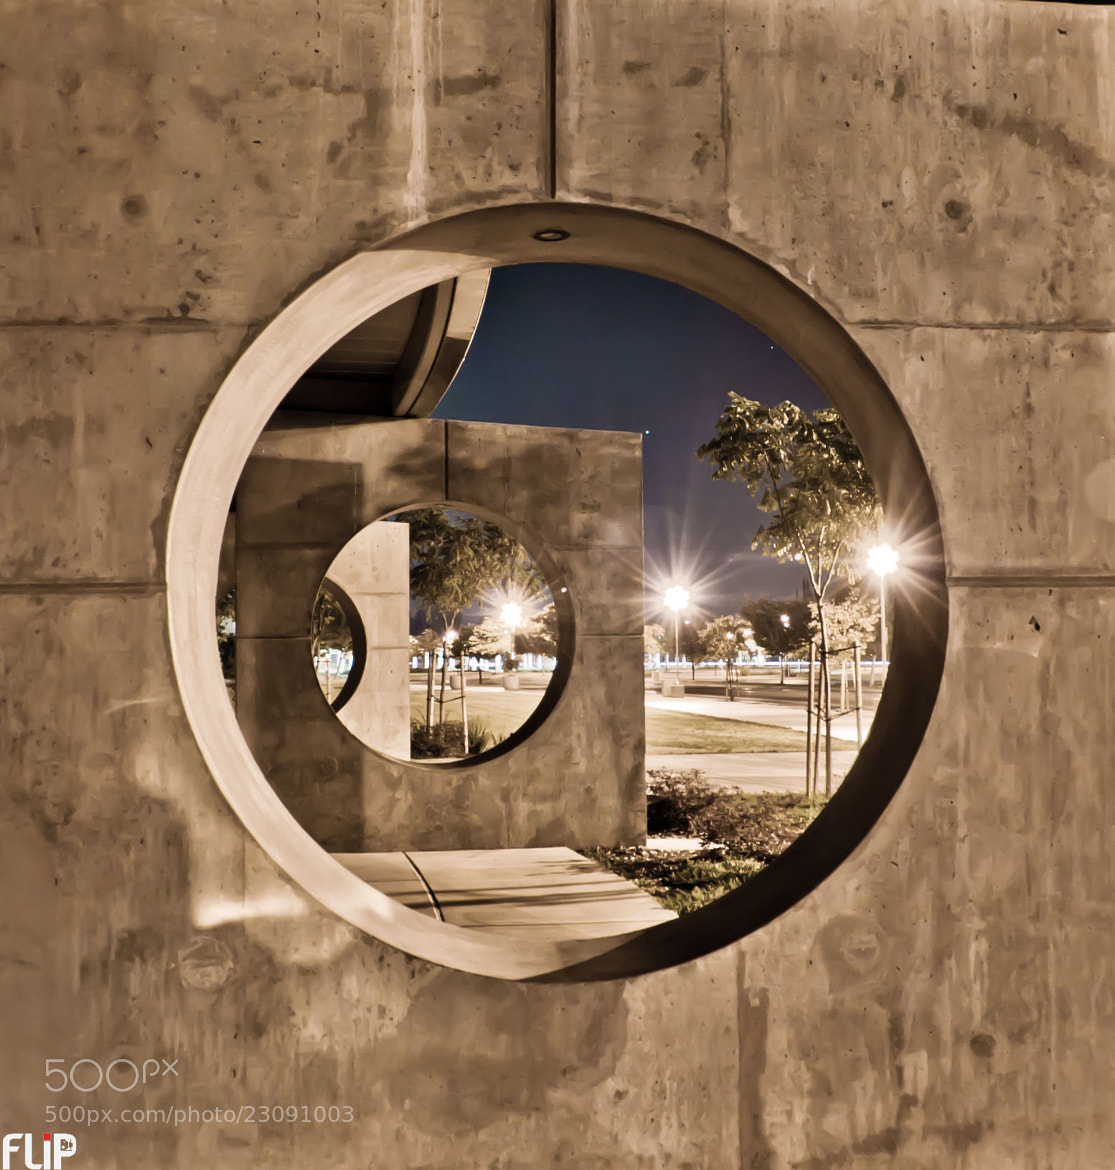 Photograph Circles by Phil Perez on 500px